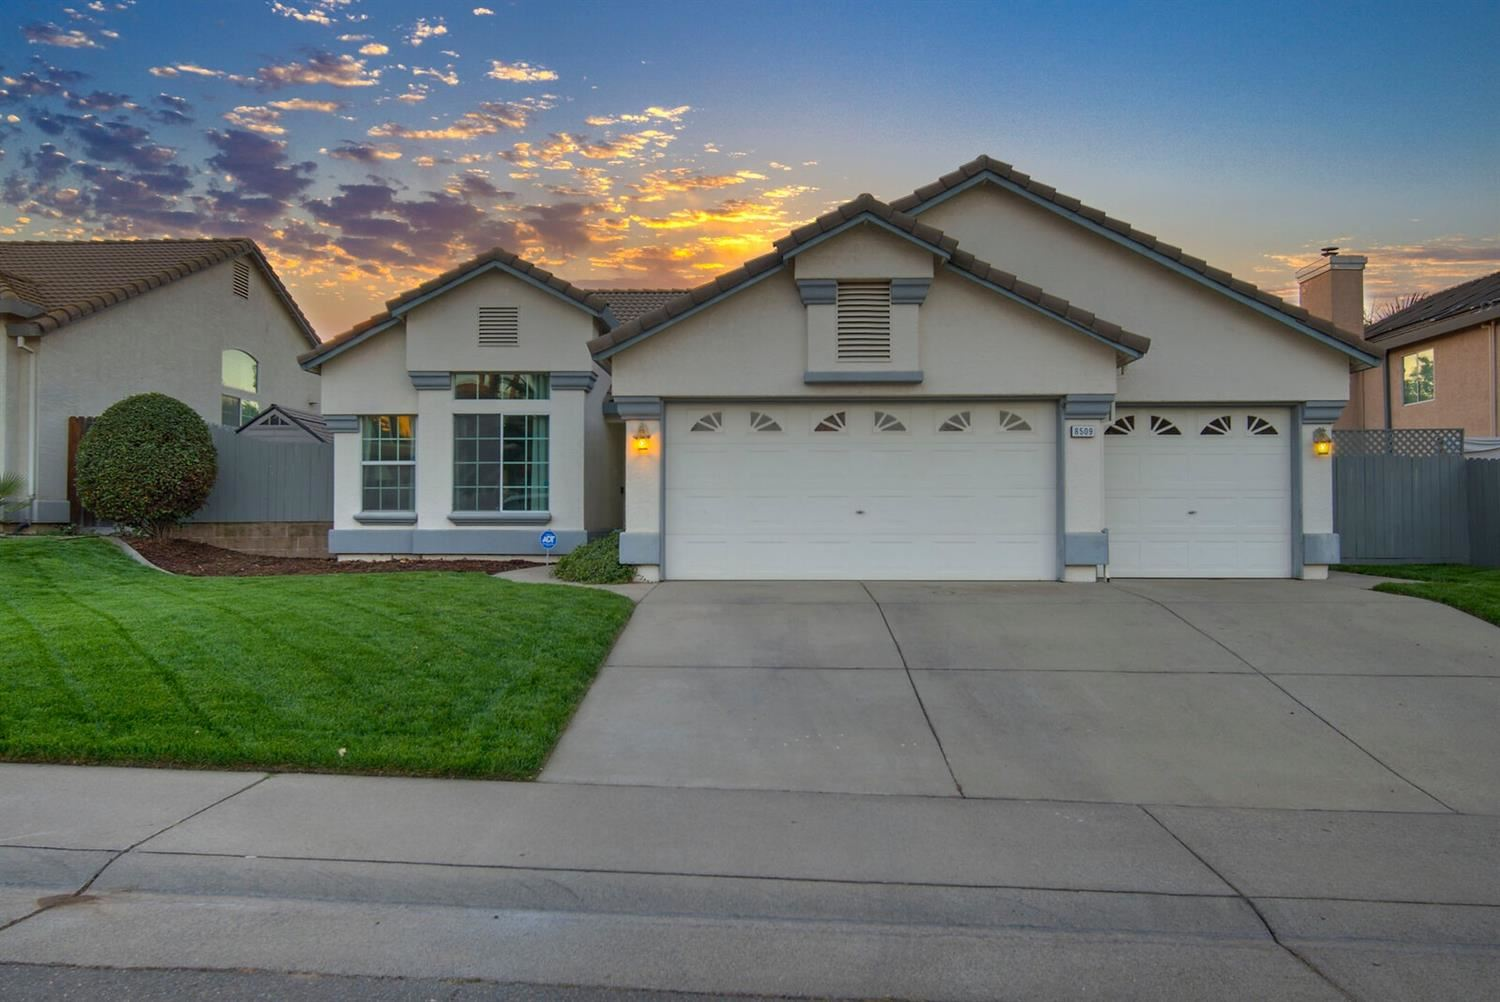 Photo of 8509 Windford Way, Antelope, CA 95843 (MLS # 20063551)